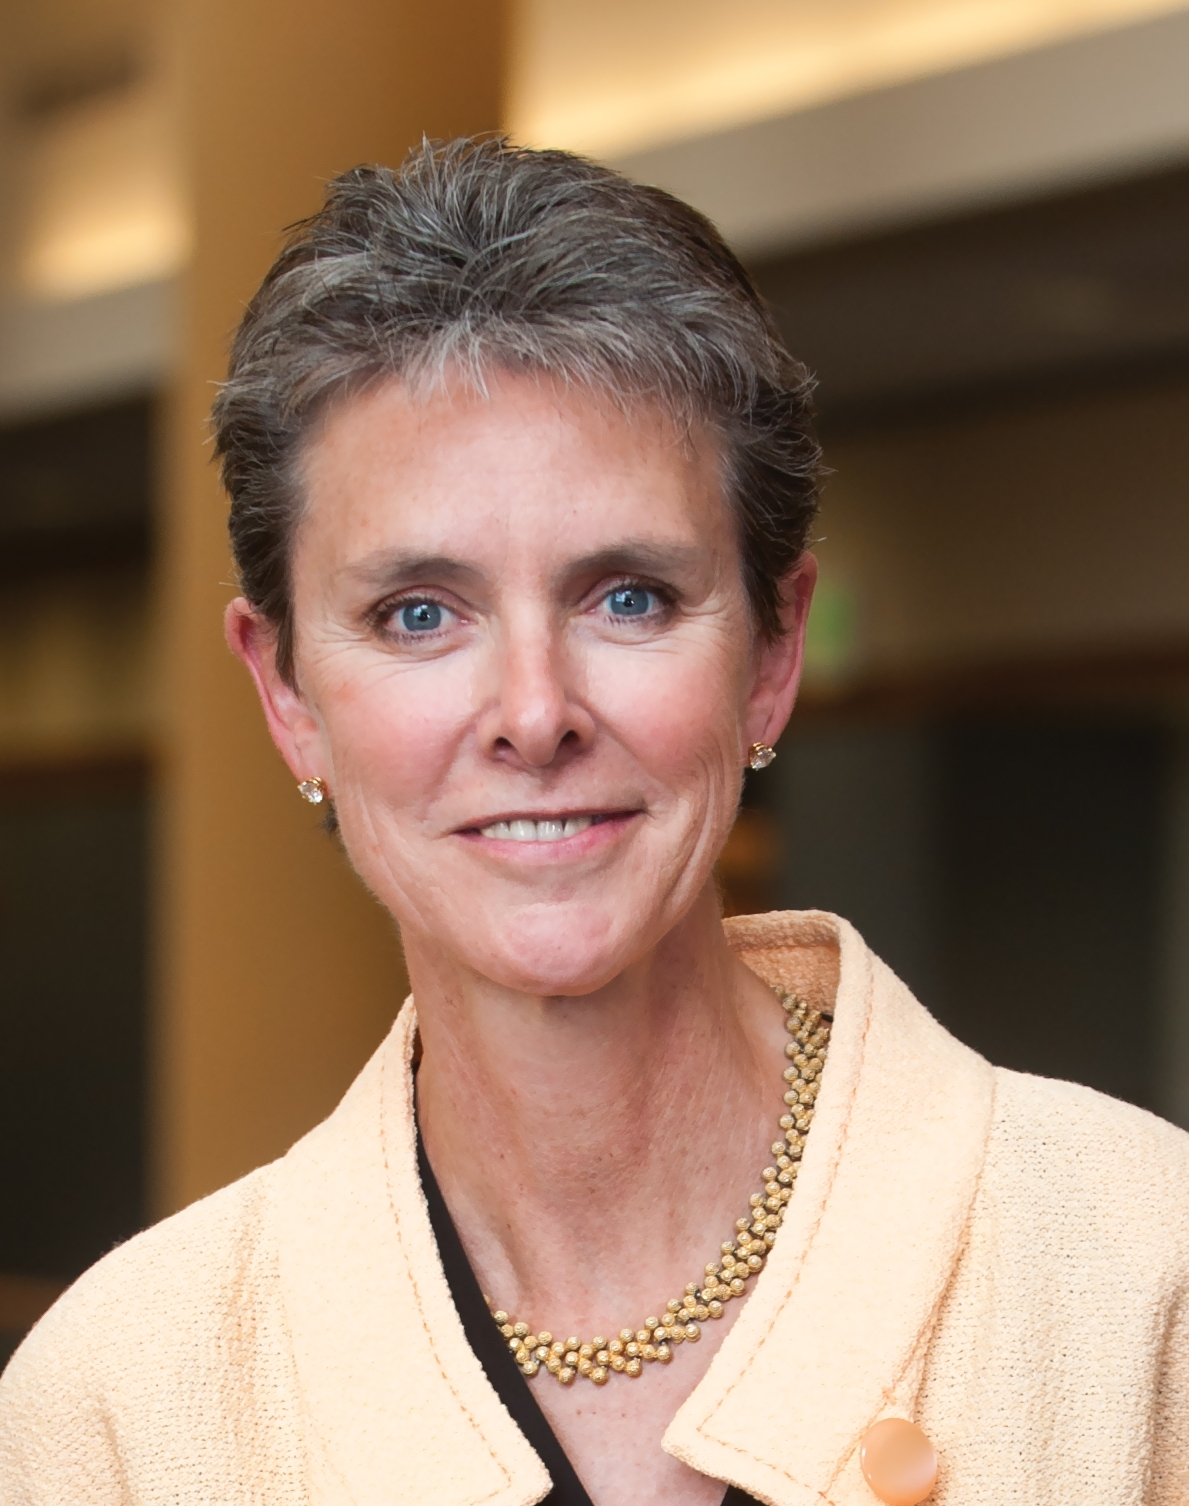 Beth Brooke-Marciniak, Global Vice Chair of Public Policy at Ernst & Young